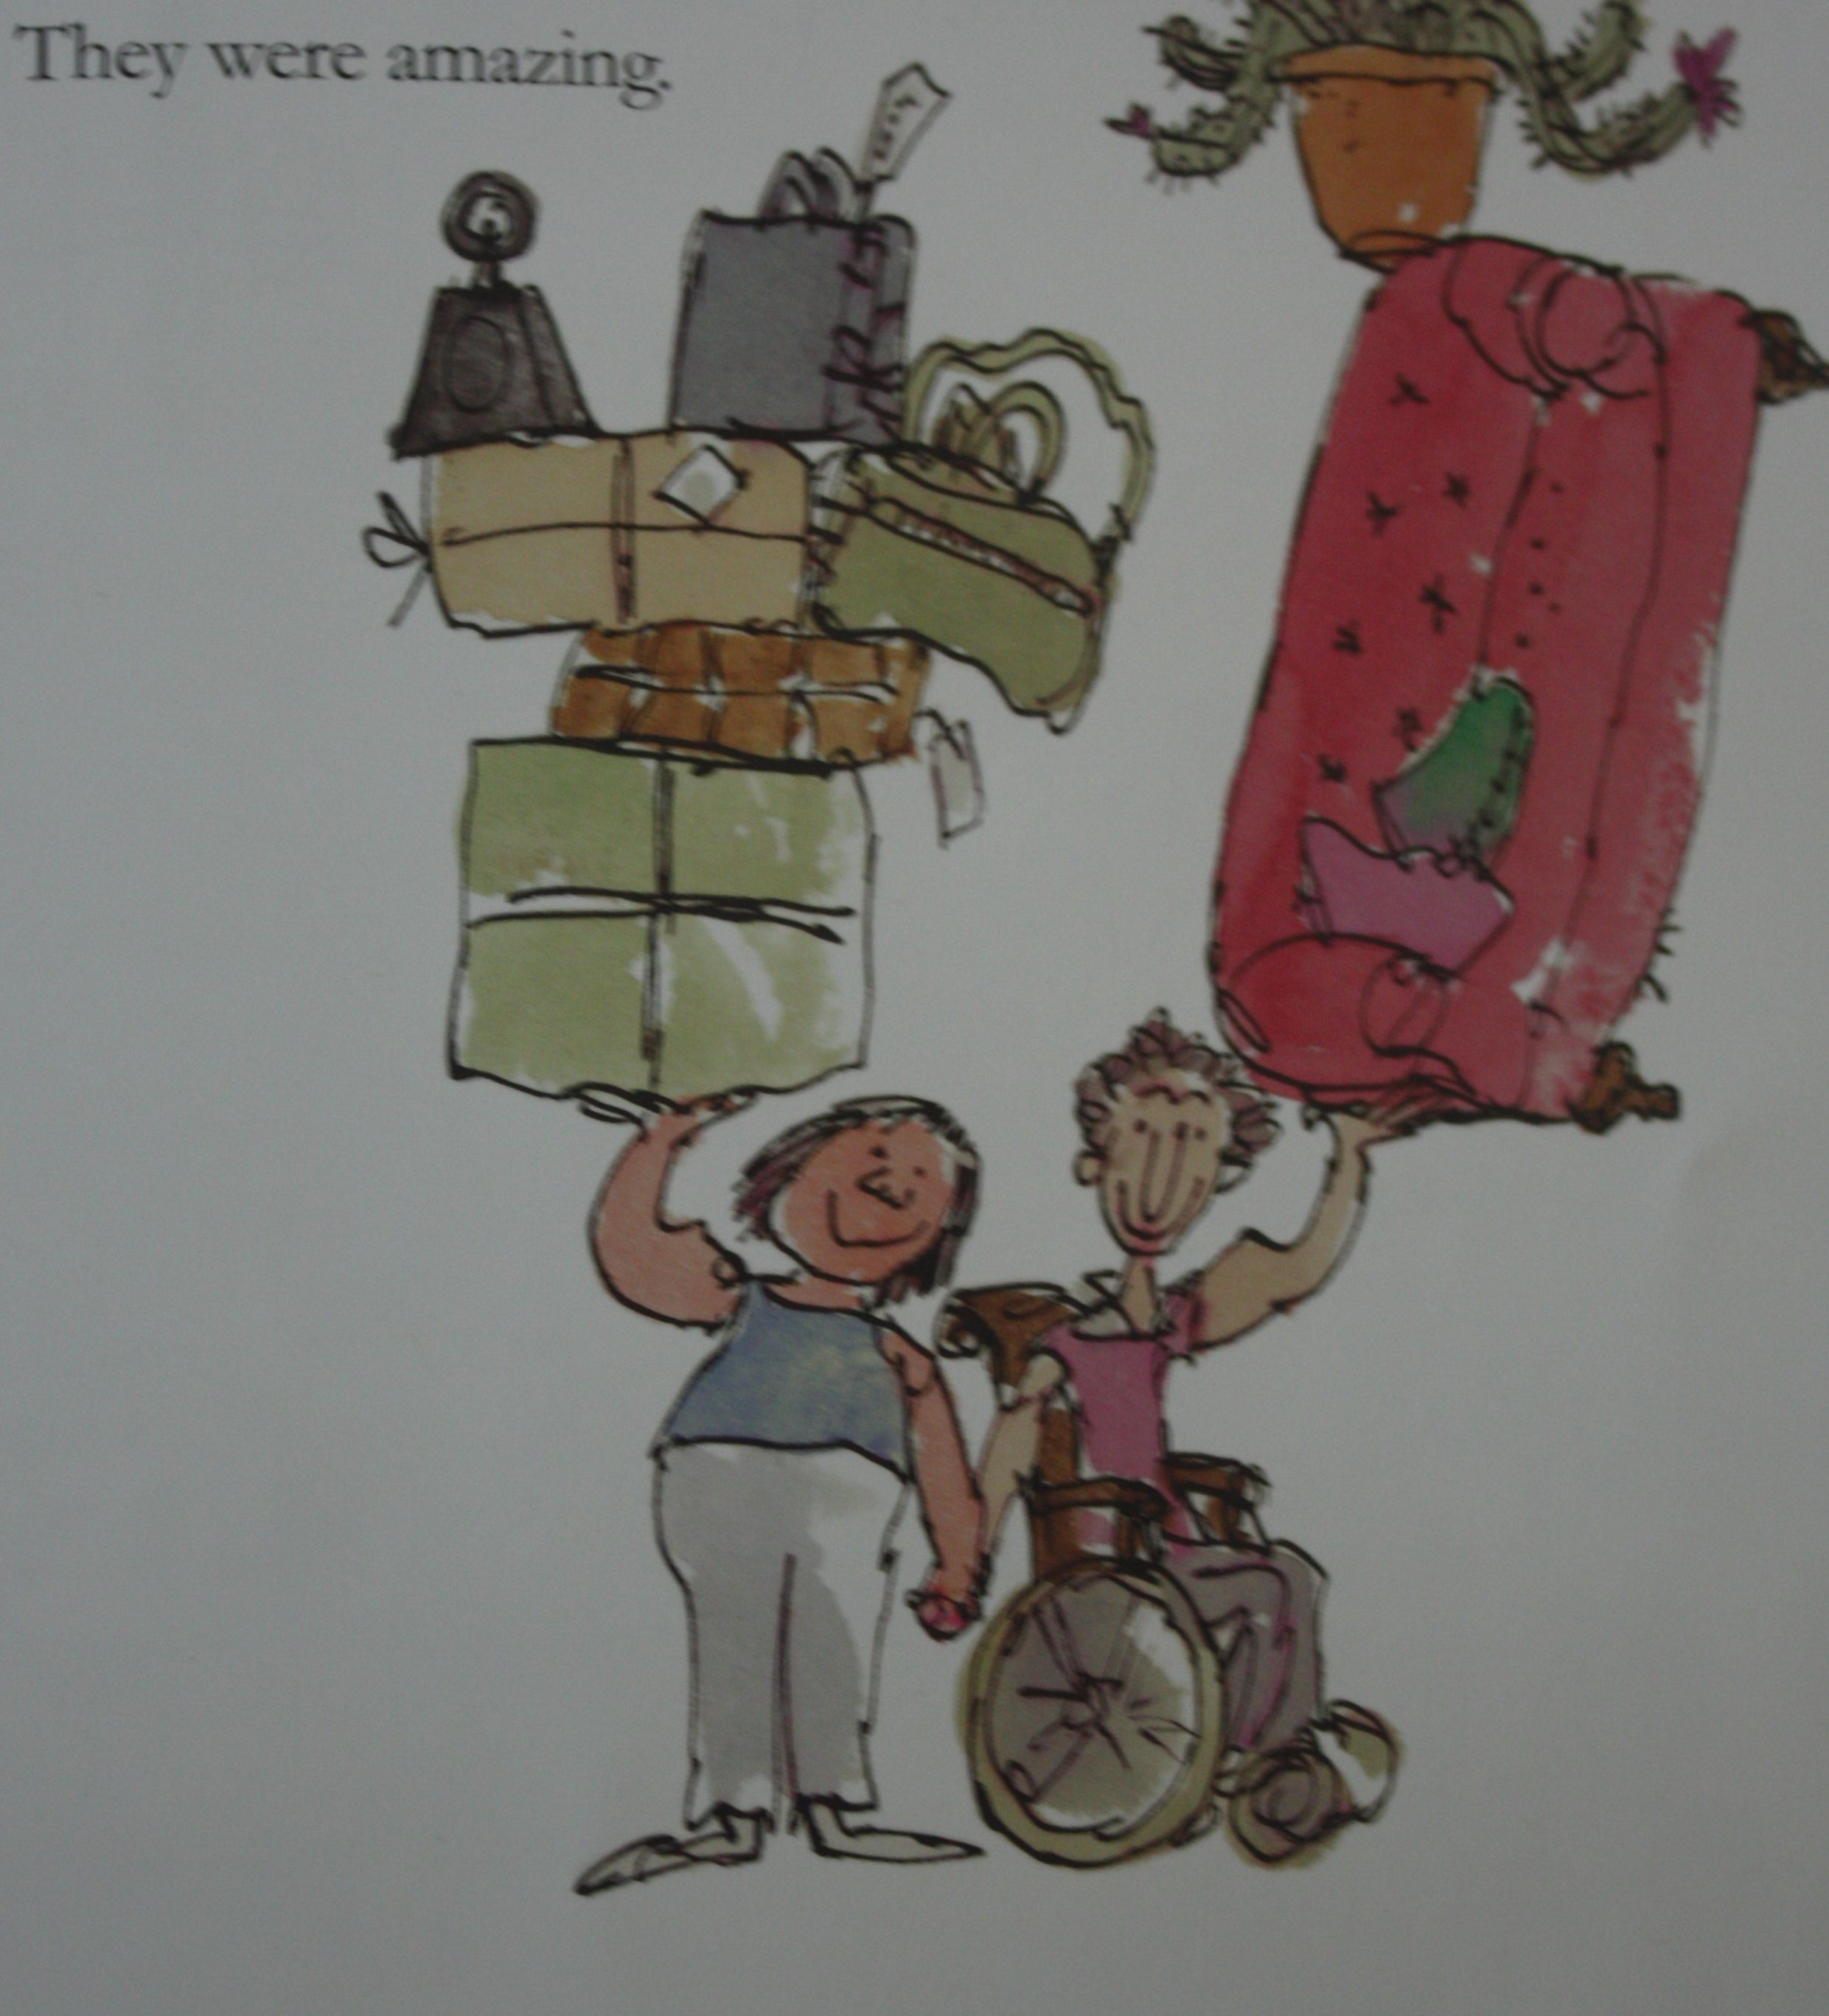 wheelchair mario chair posture exercises where are the wheelchairs in childrens books 3 book